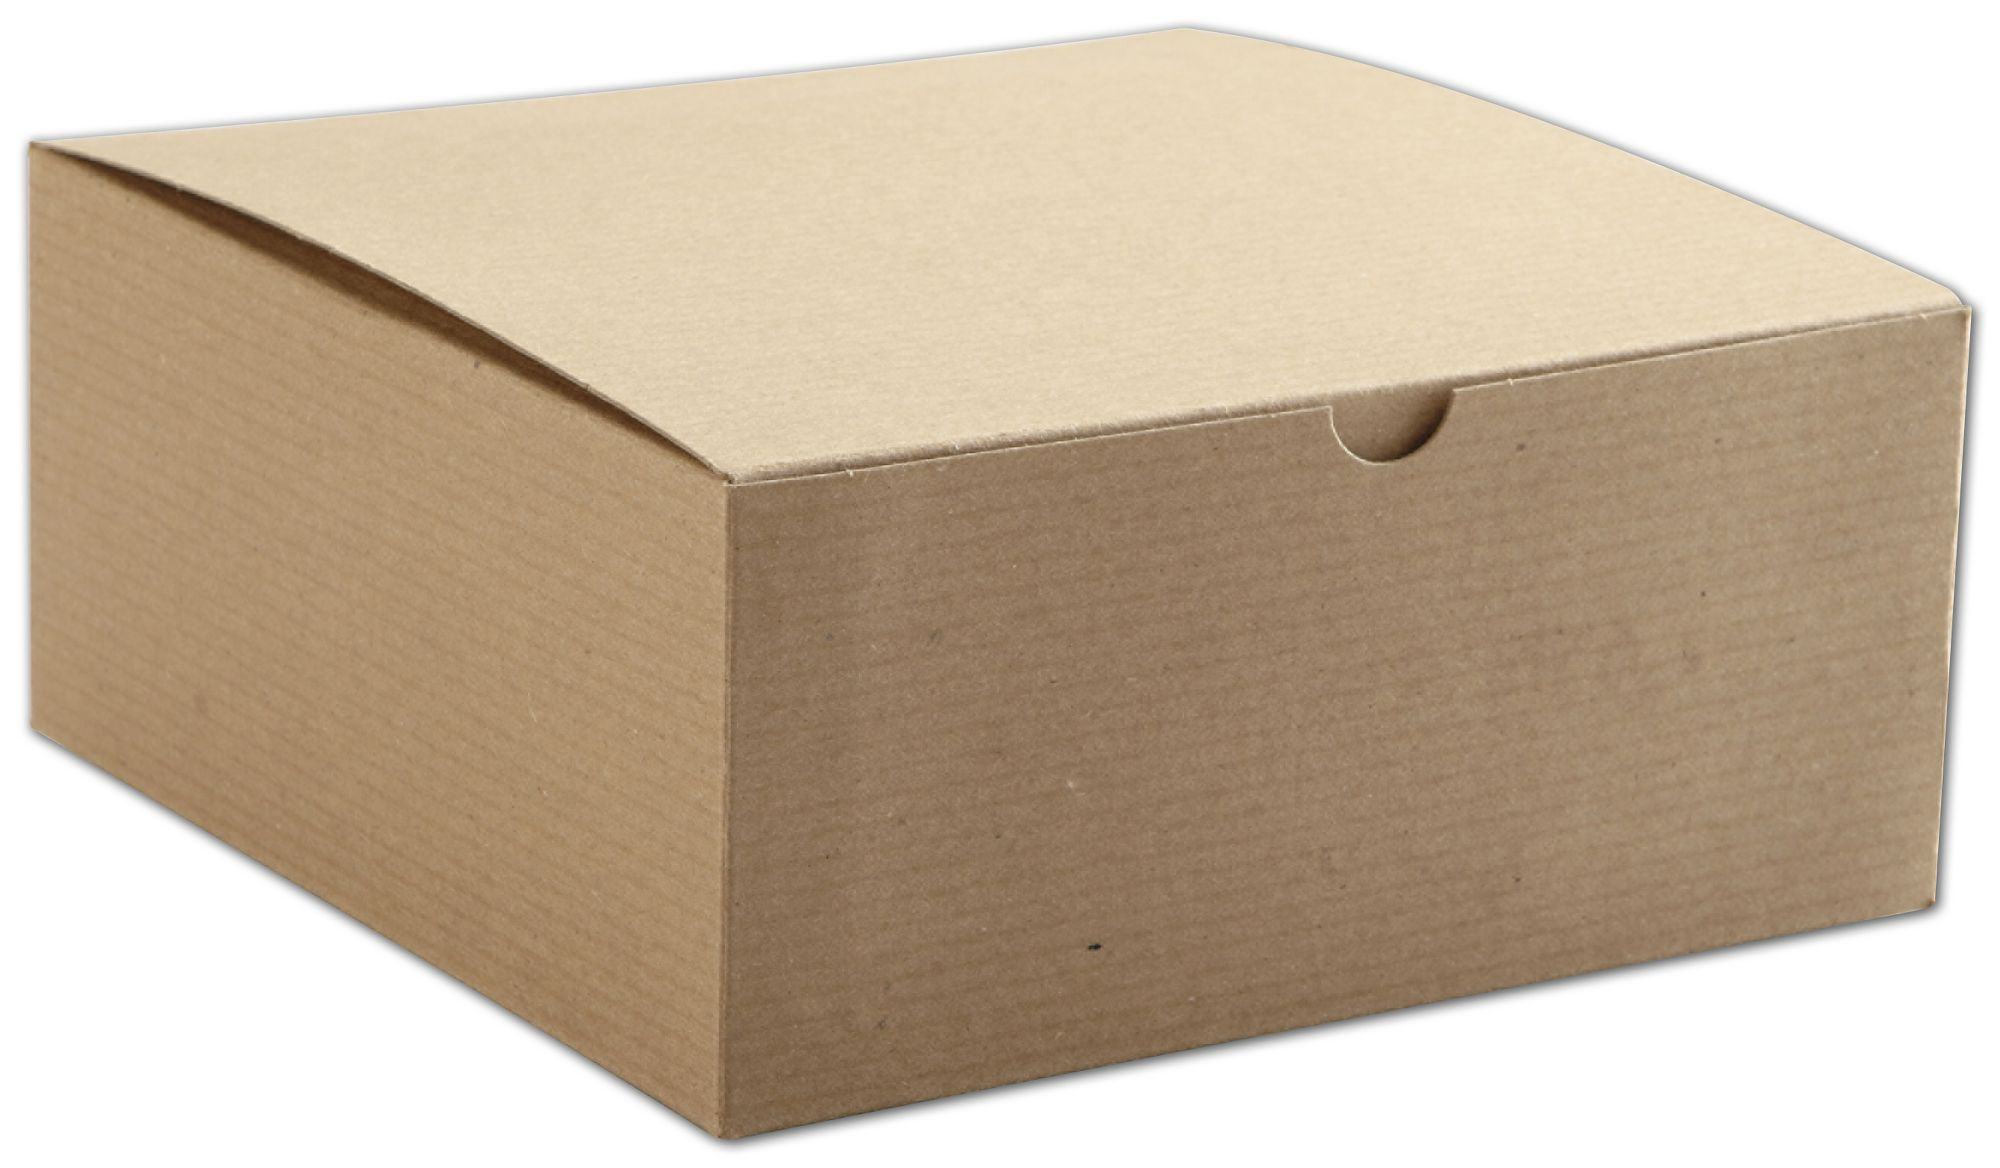 "Kraft One-Piece Gift Boxes, 8 x 8 x 3 1/2"" (100 Boxes) - BOWS-250-80803C-8"